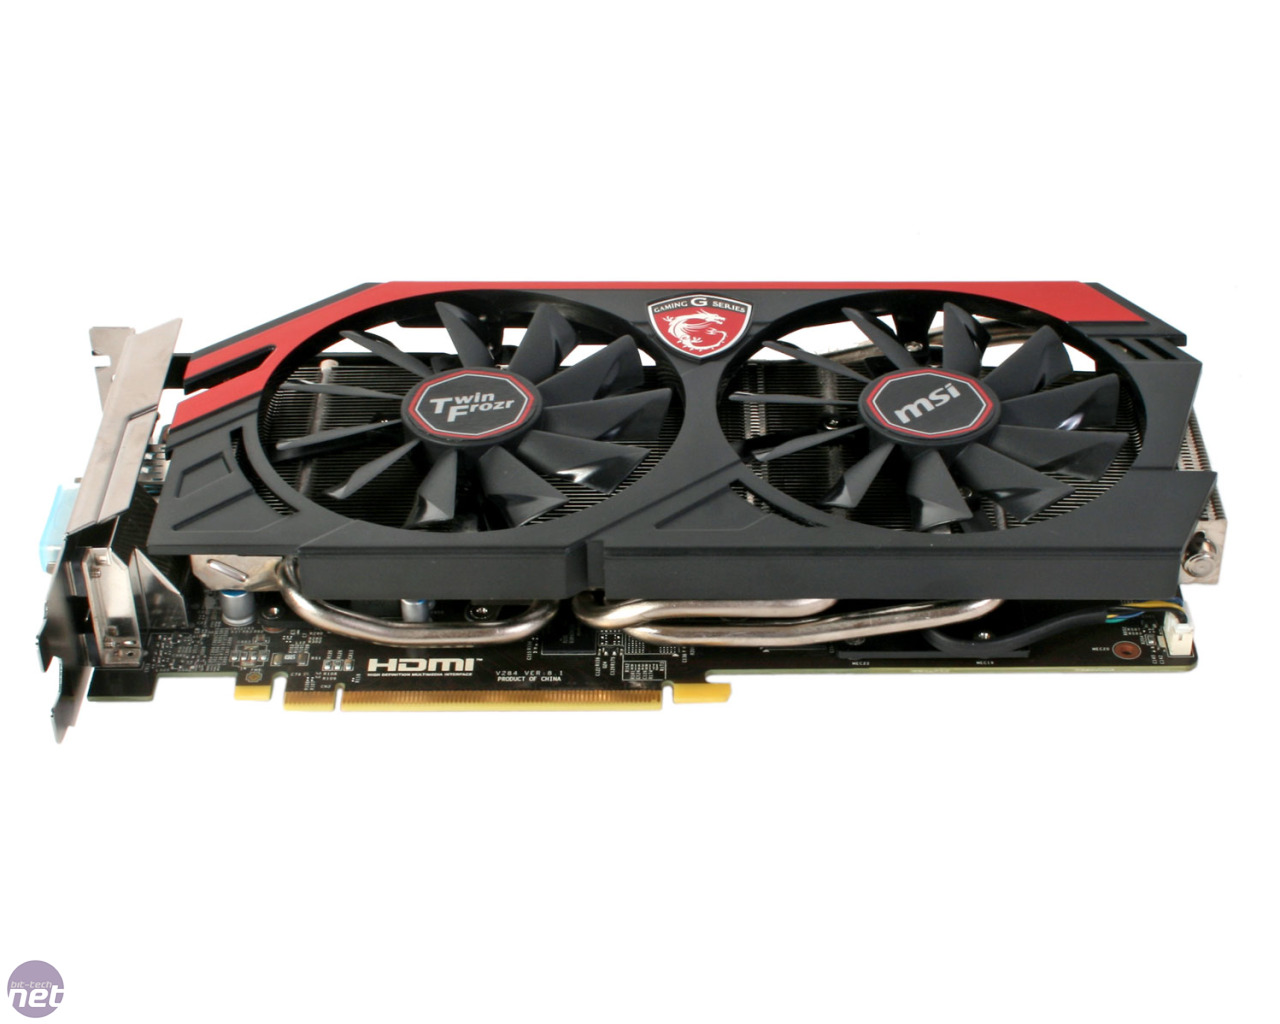 msi-760-twin-frozr-1-b